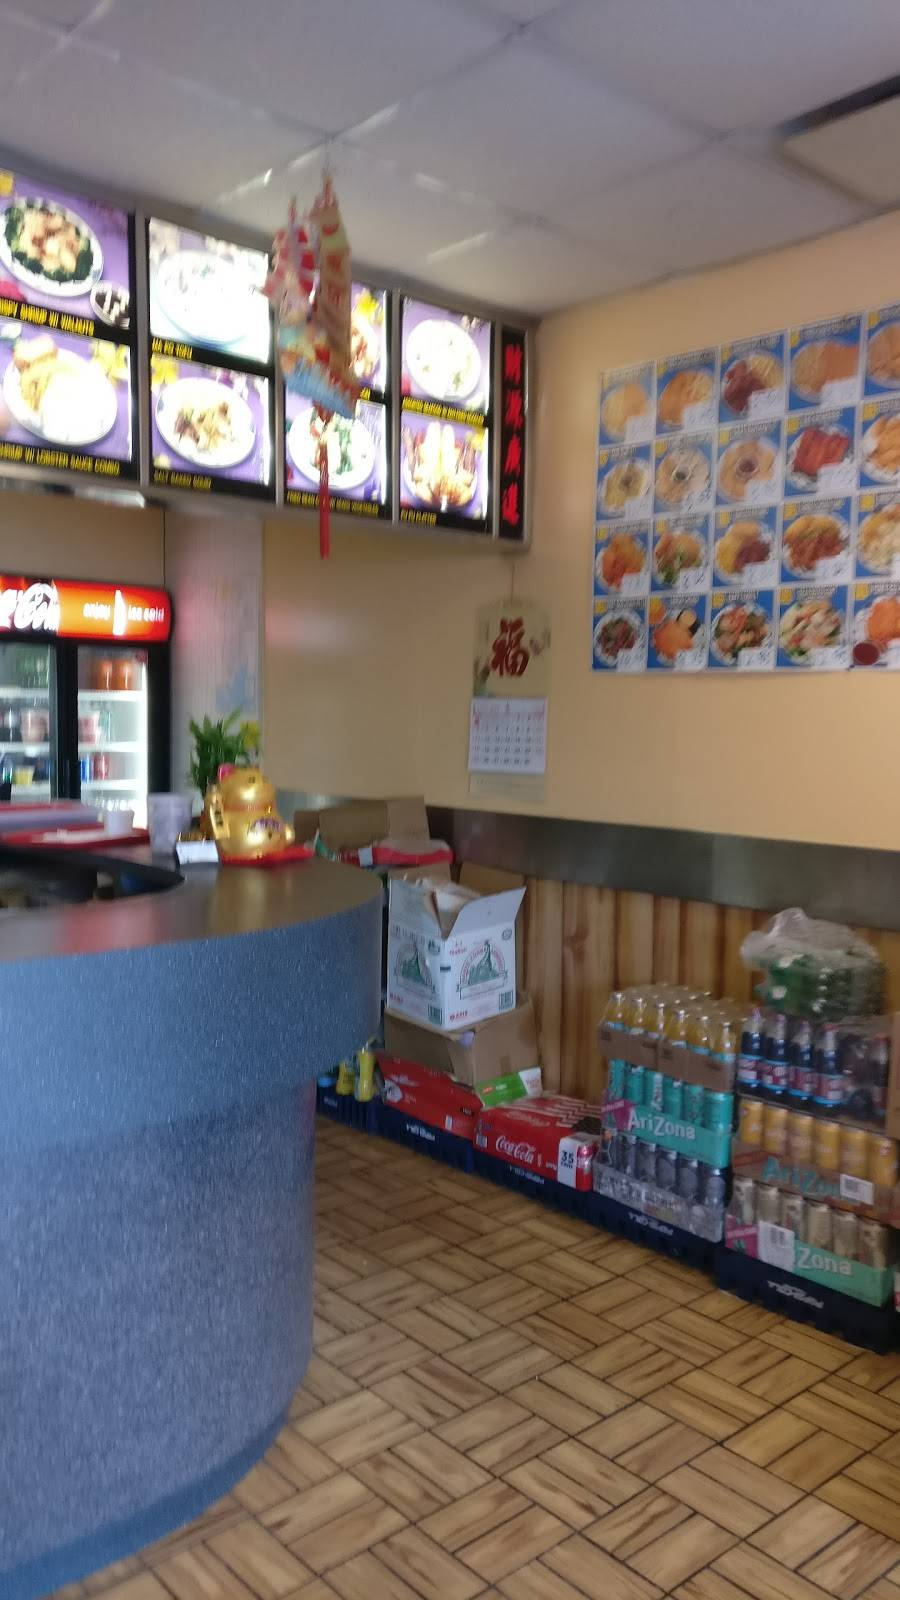 Cheungs Garden | meal takeaway | 730 Grand Blvd, Deer Park, NY 11729, USA | 6312420738 OR +1 631-242-0738